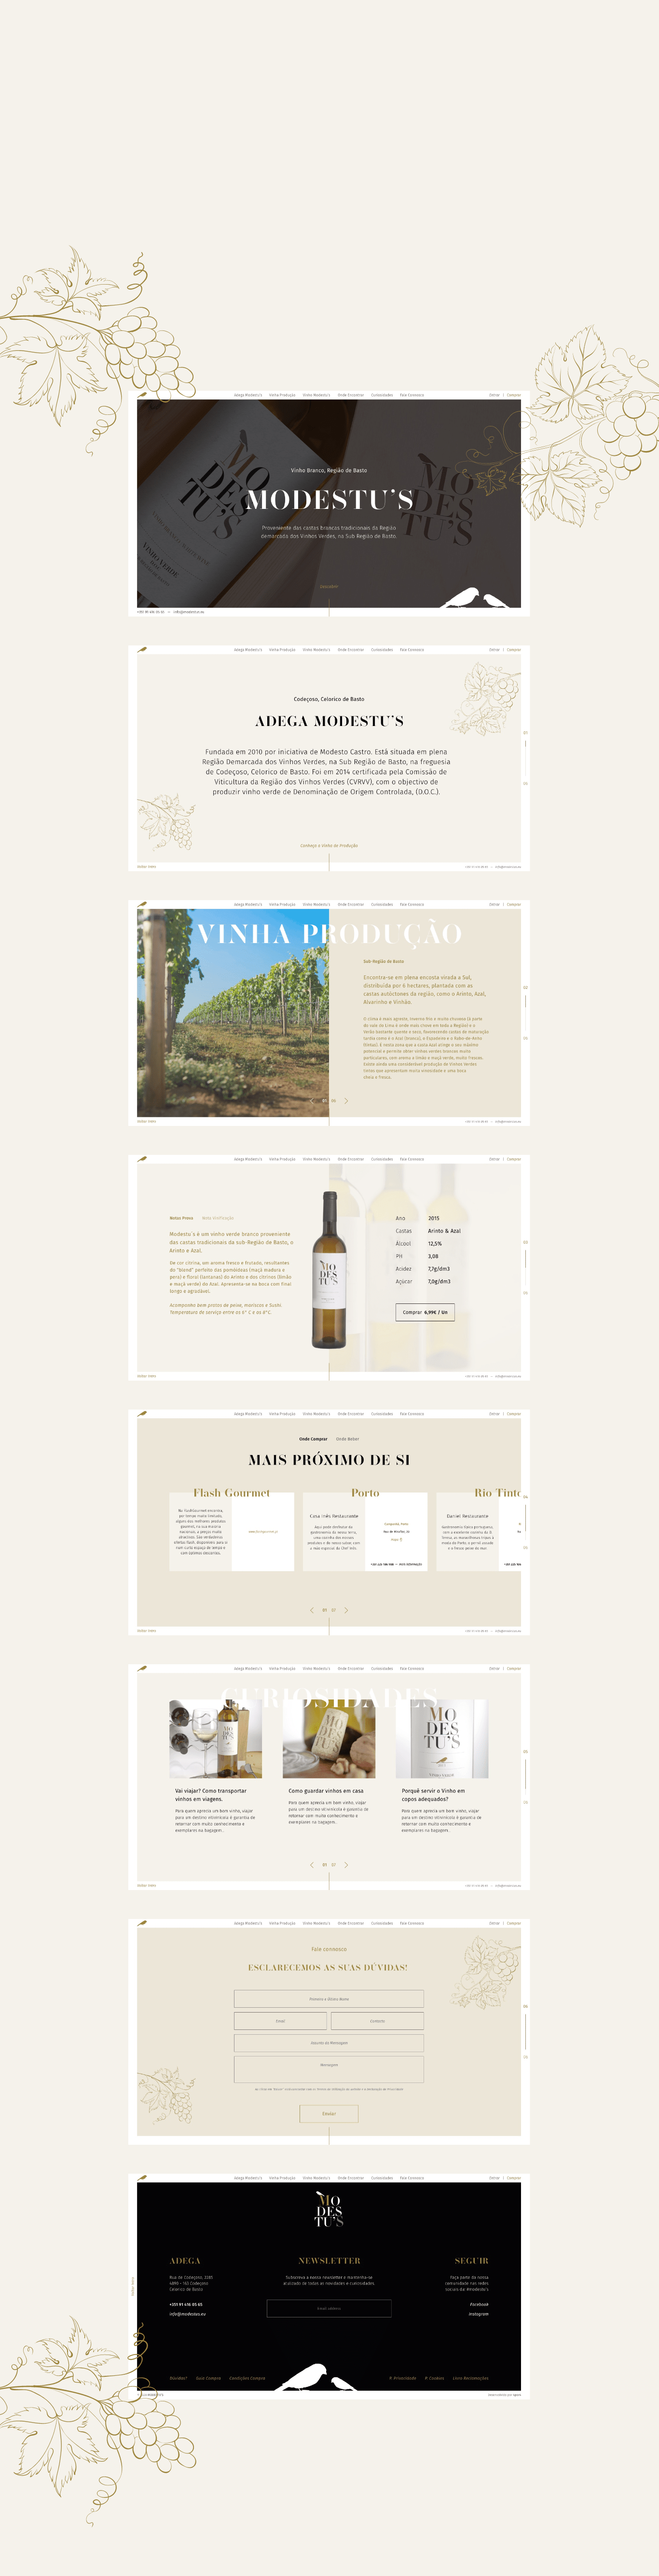 layout developed to online store